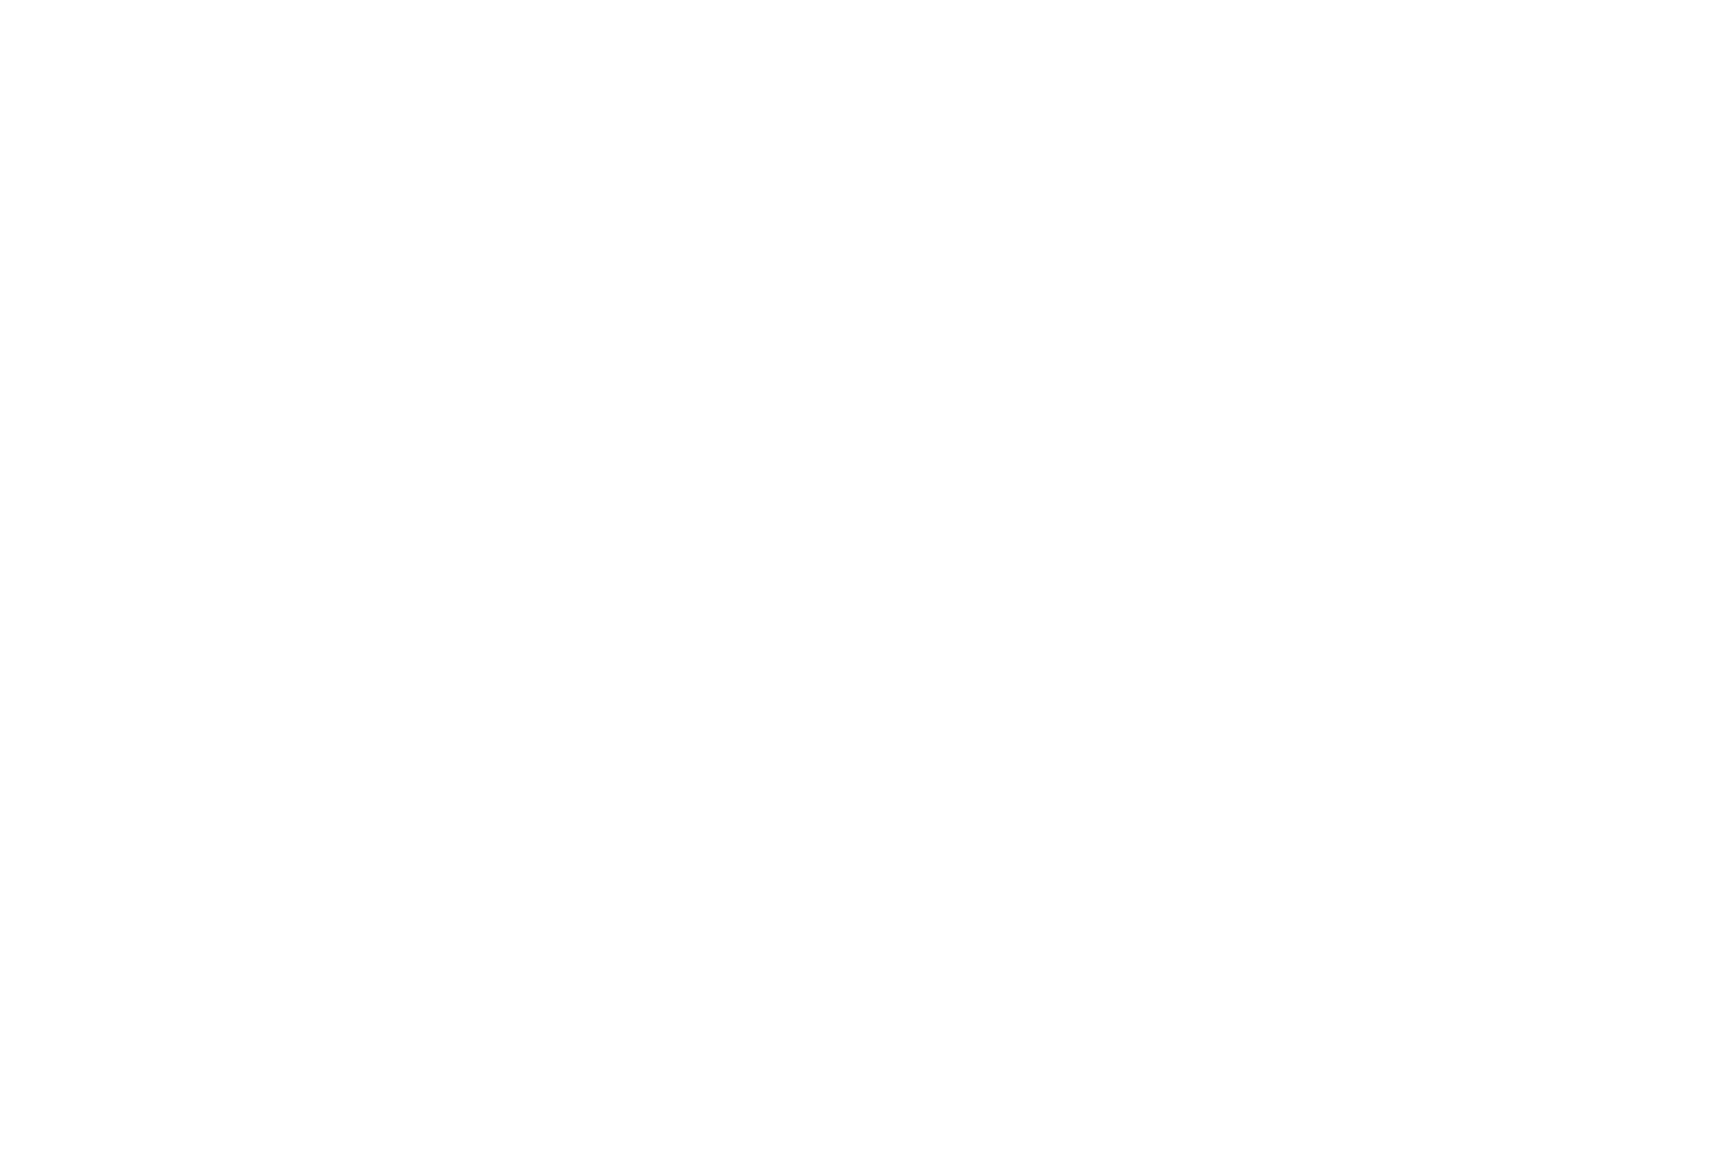 OFFICIAL SELECTION - Web Series Festival Global 2017 - History Web Series.png